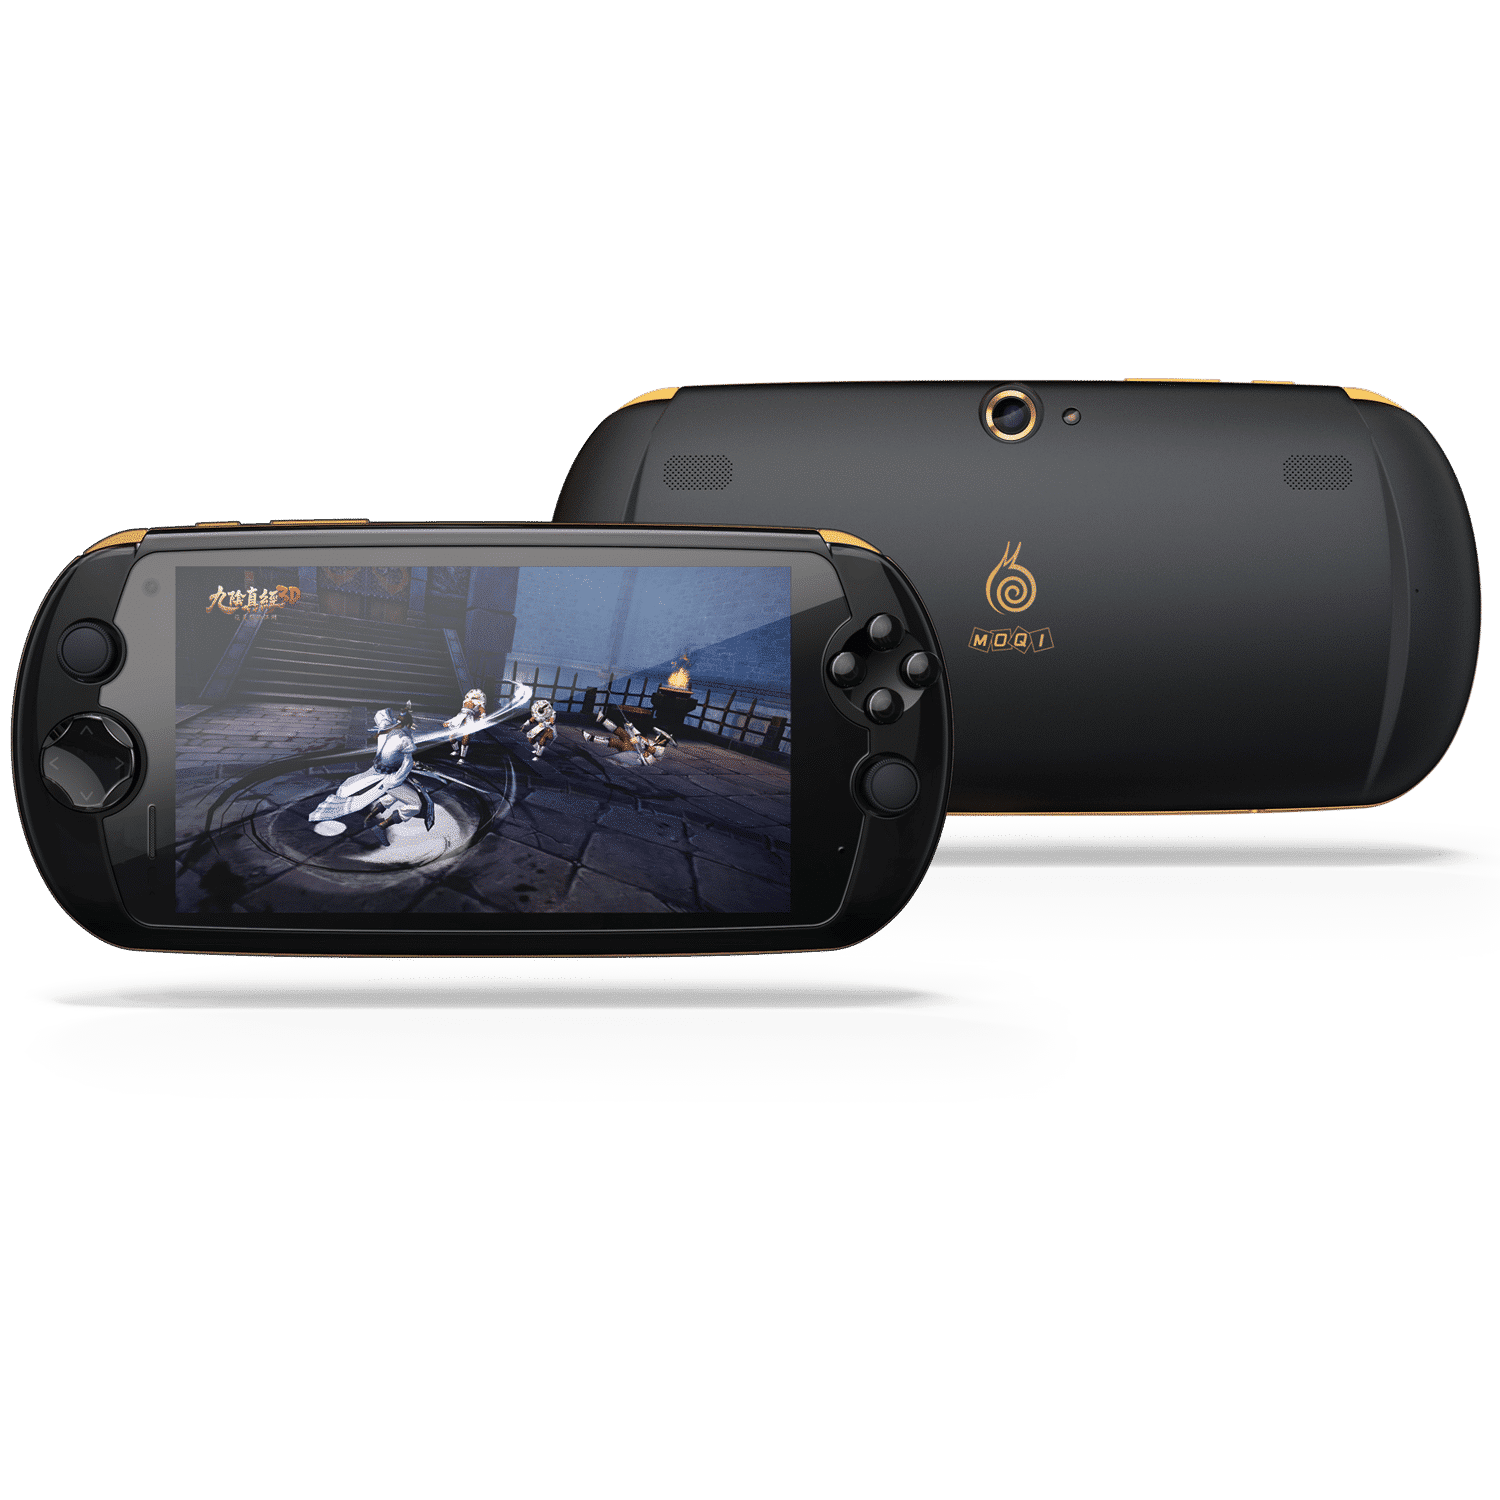 MOQi i7 Android Smartphone Handheld - Front view showing the console playing a MMORPG Game and the Camera on the back